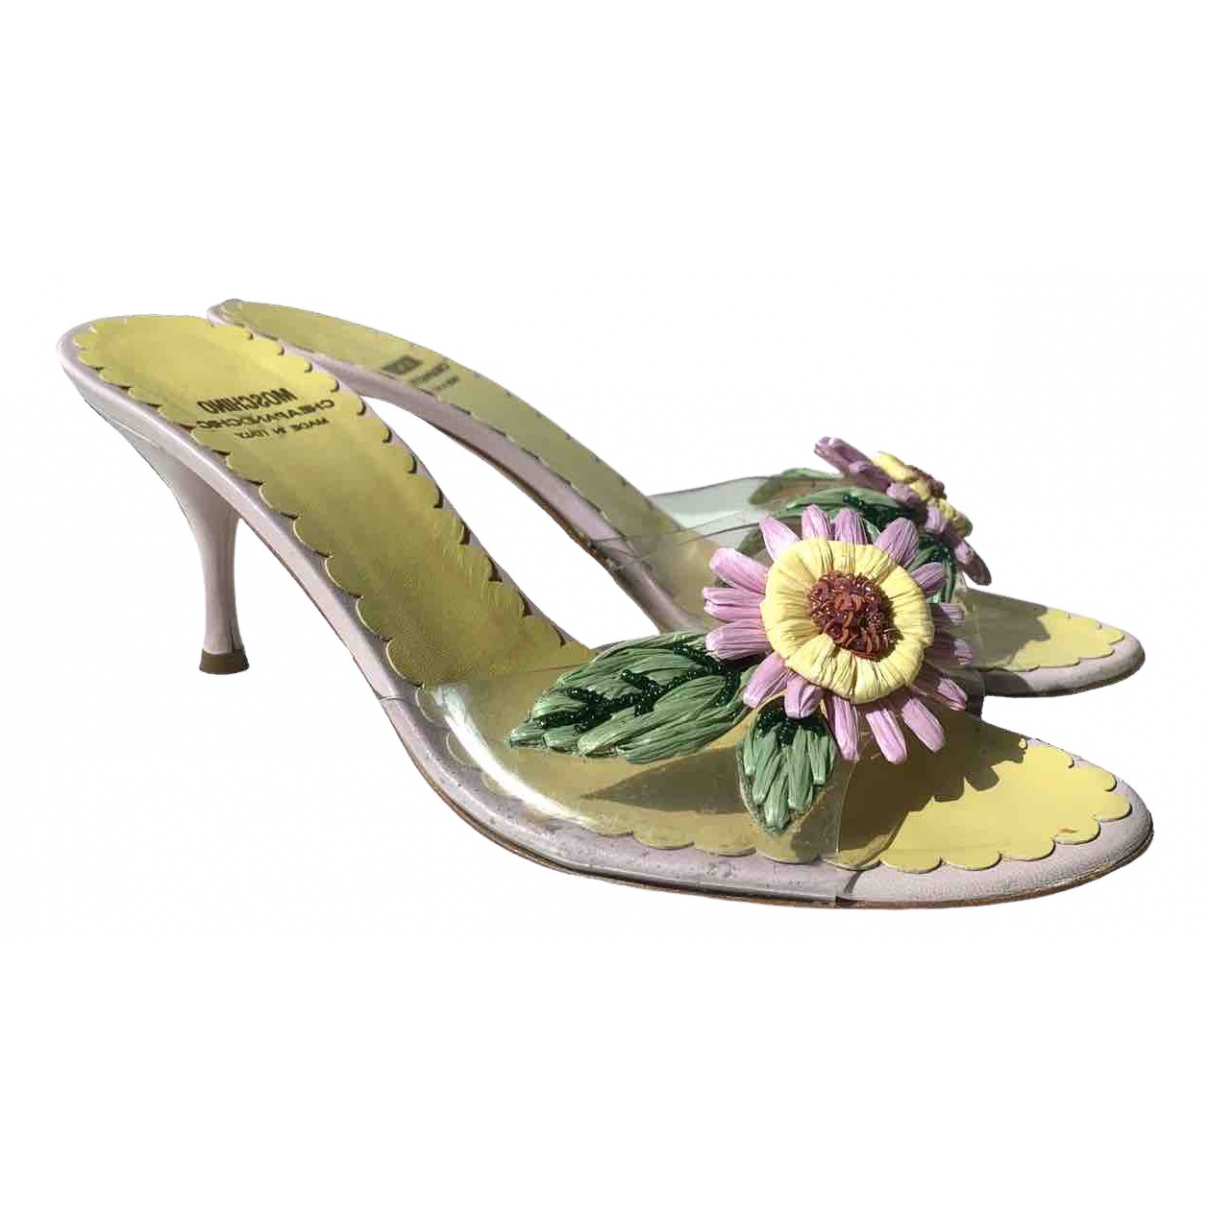 Moschino Cheap And Chic \N Purple Leather Mules & Clogs for Women 39 EU